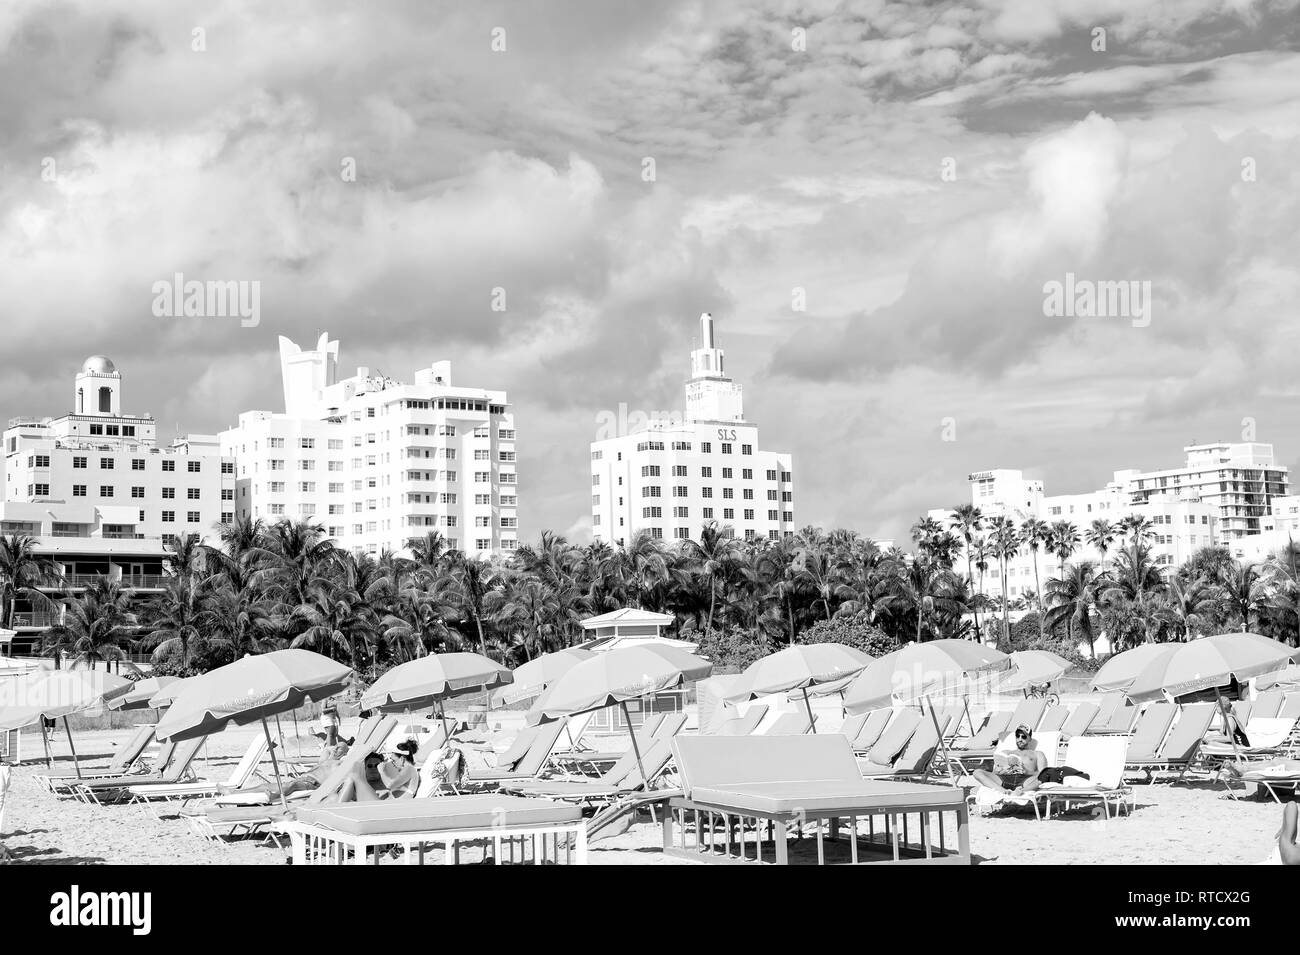 Miami, USA - January 10, 2016: South beach or miami beach. people relaxing on deck chairs under blue umbrellas on sunny sandy beach with palms, high buildings on cloudy blue sky. Summer vacation. - Stock Image